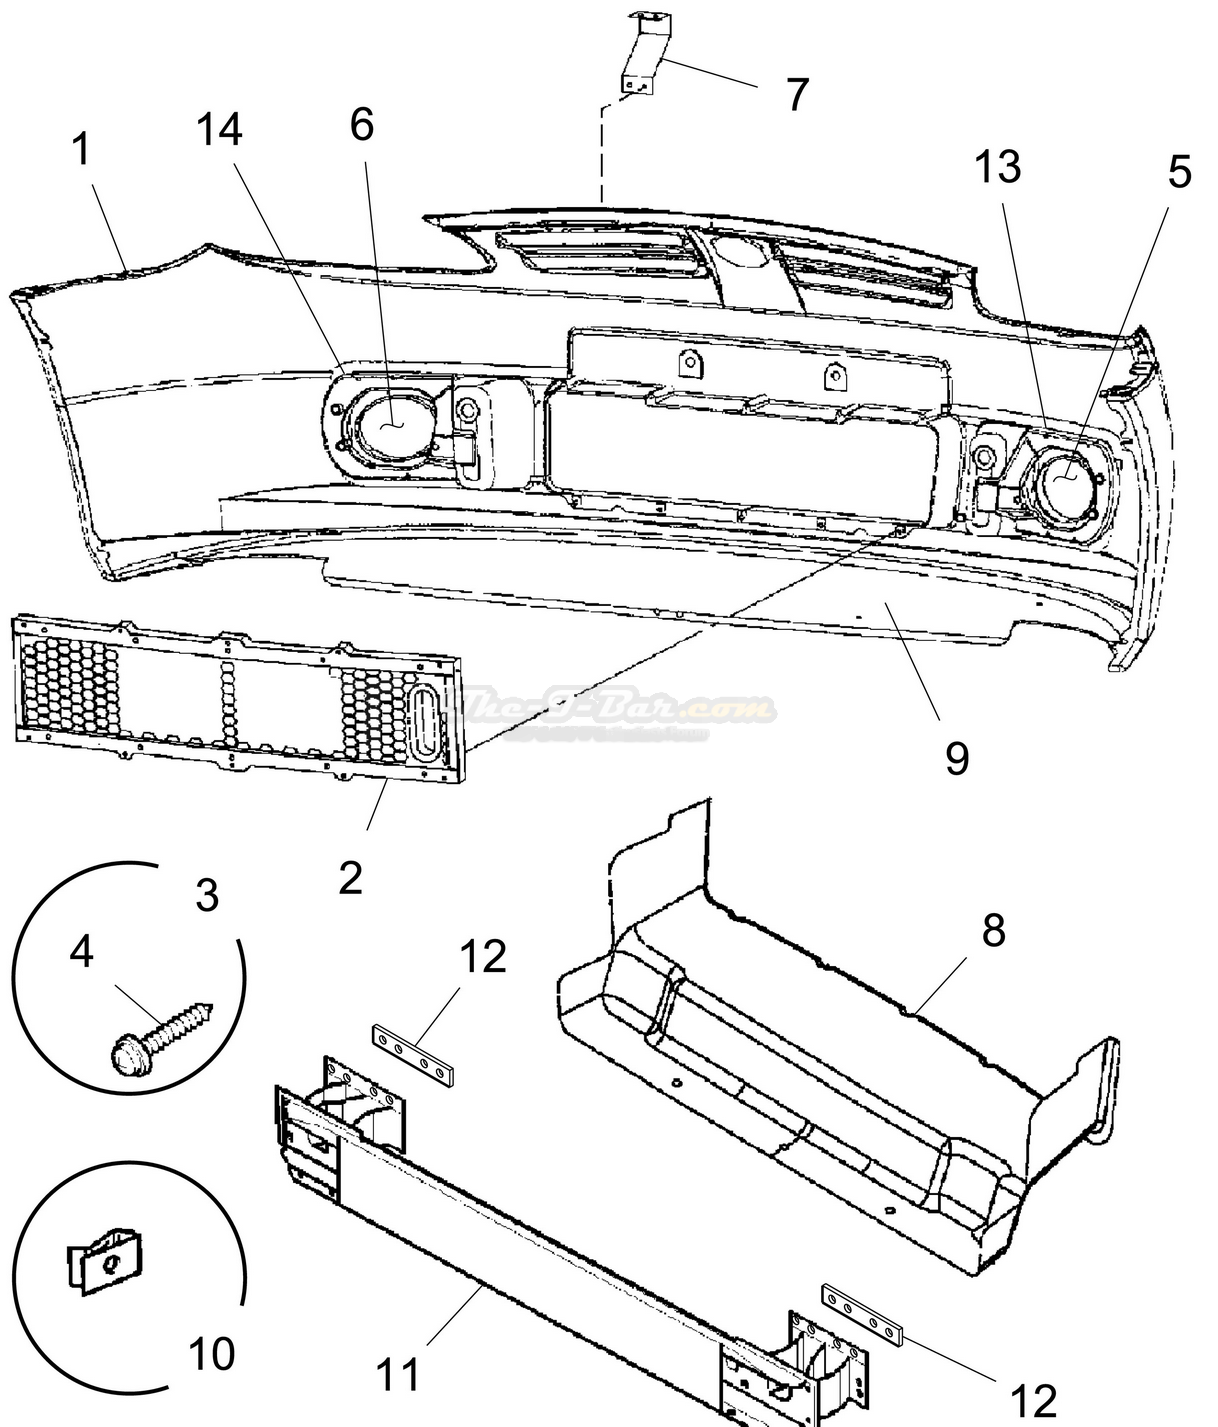 2004 ford ranger bumper diagram html